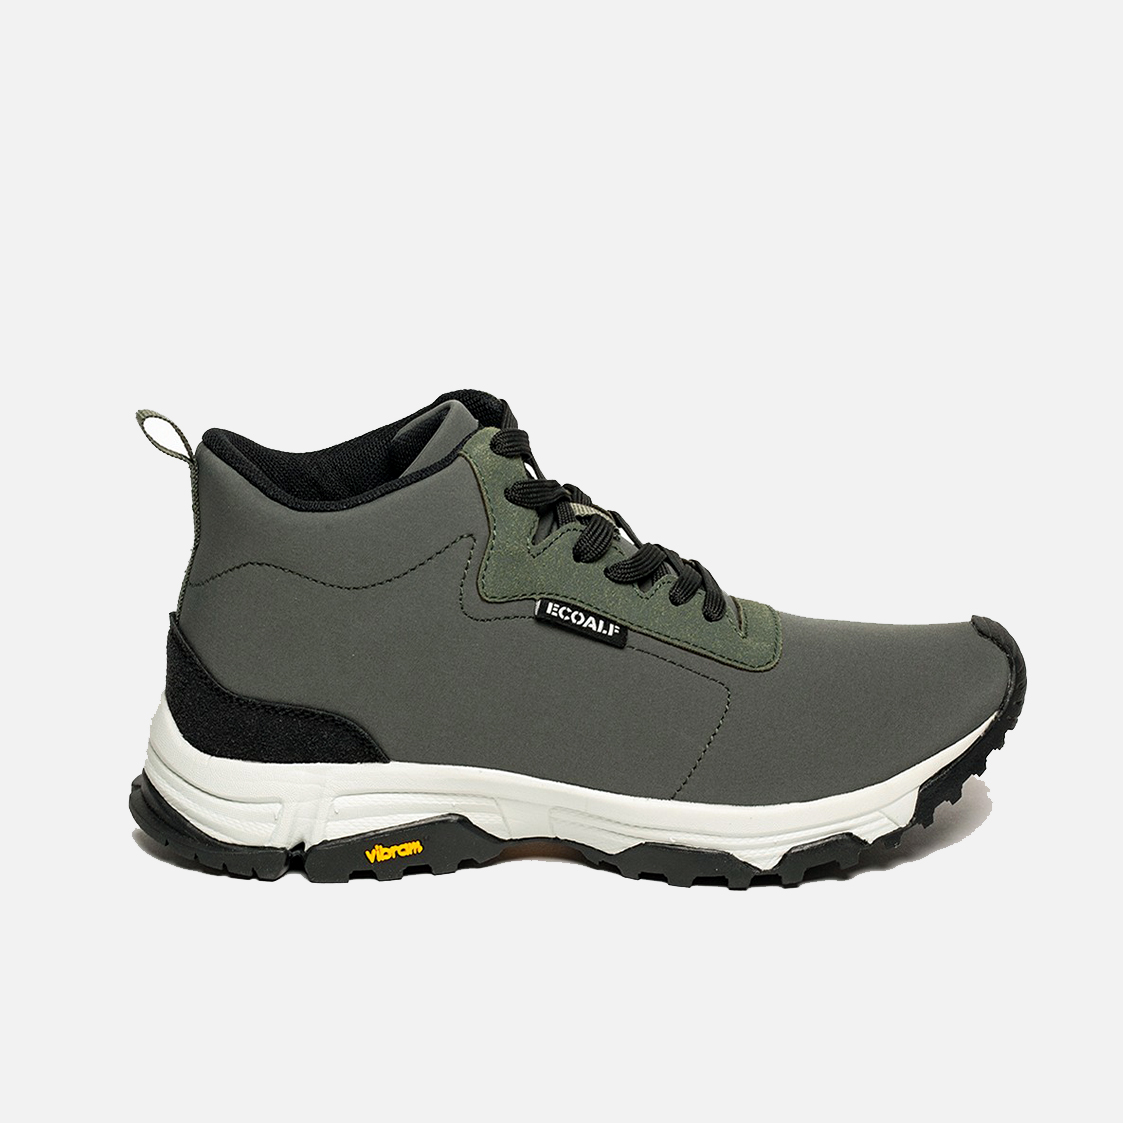 Ecoalf Vegan Sneaker Chronos Black Vibram Mens Trainer